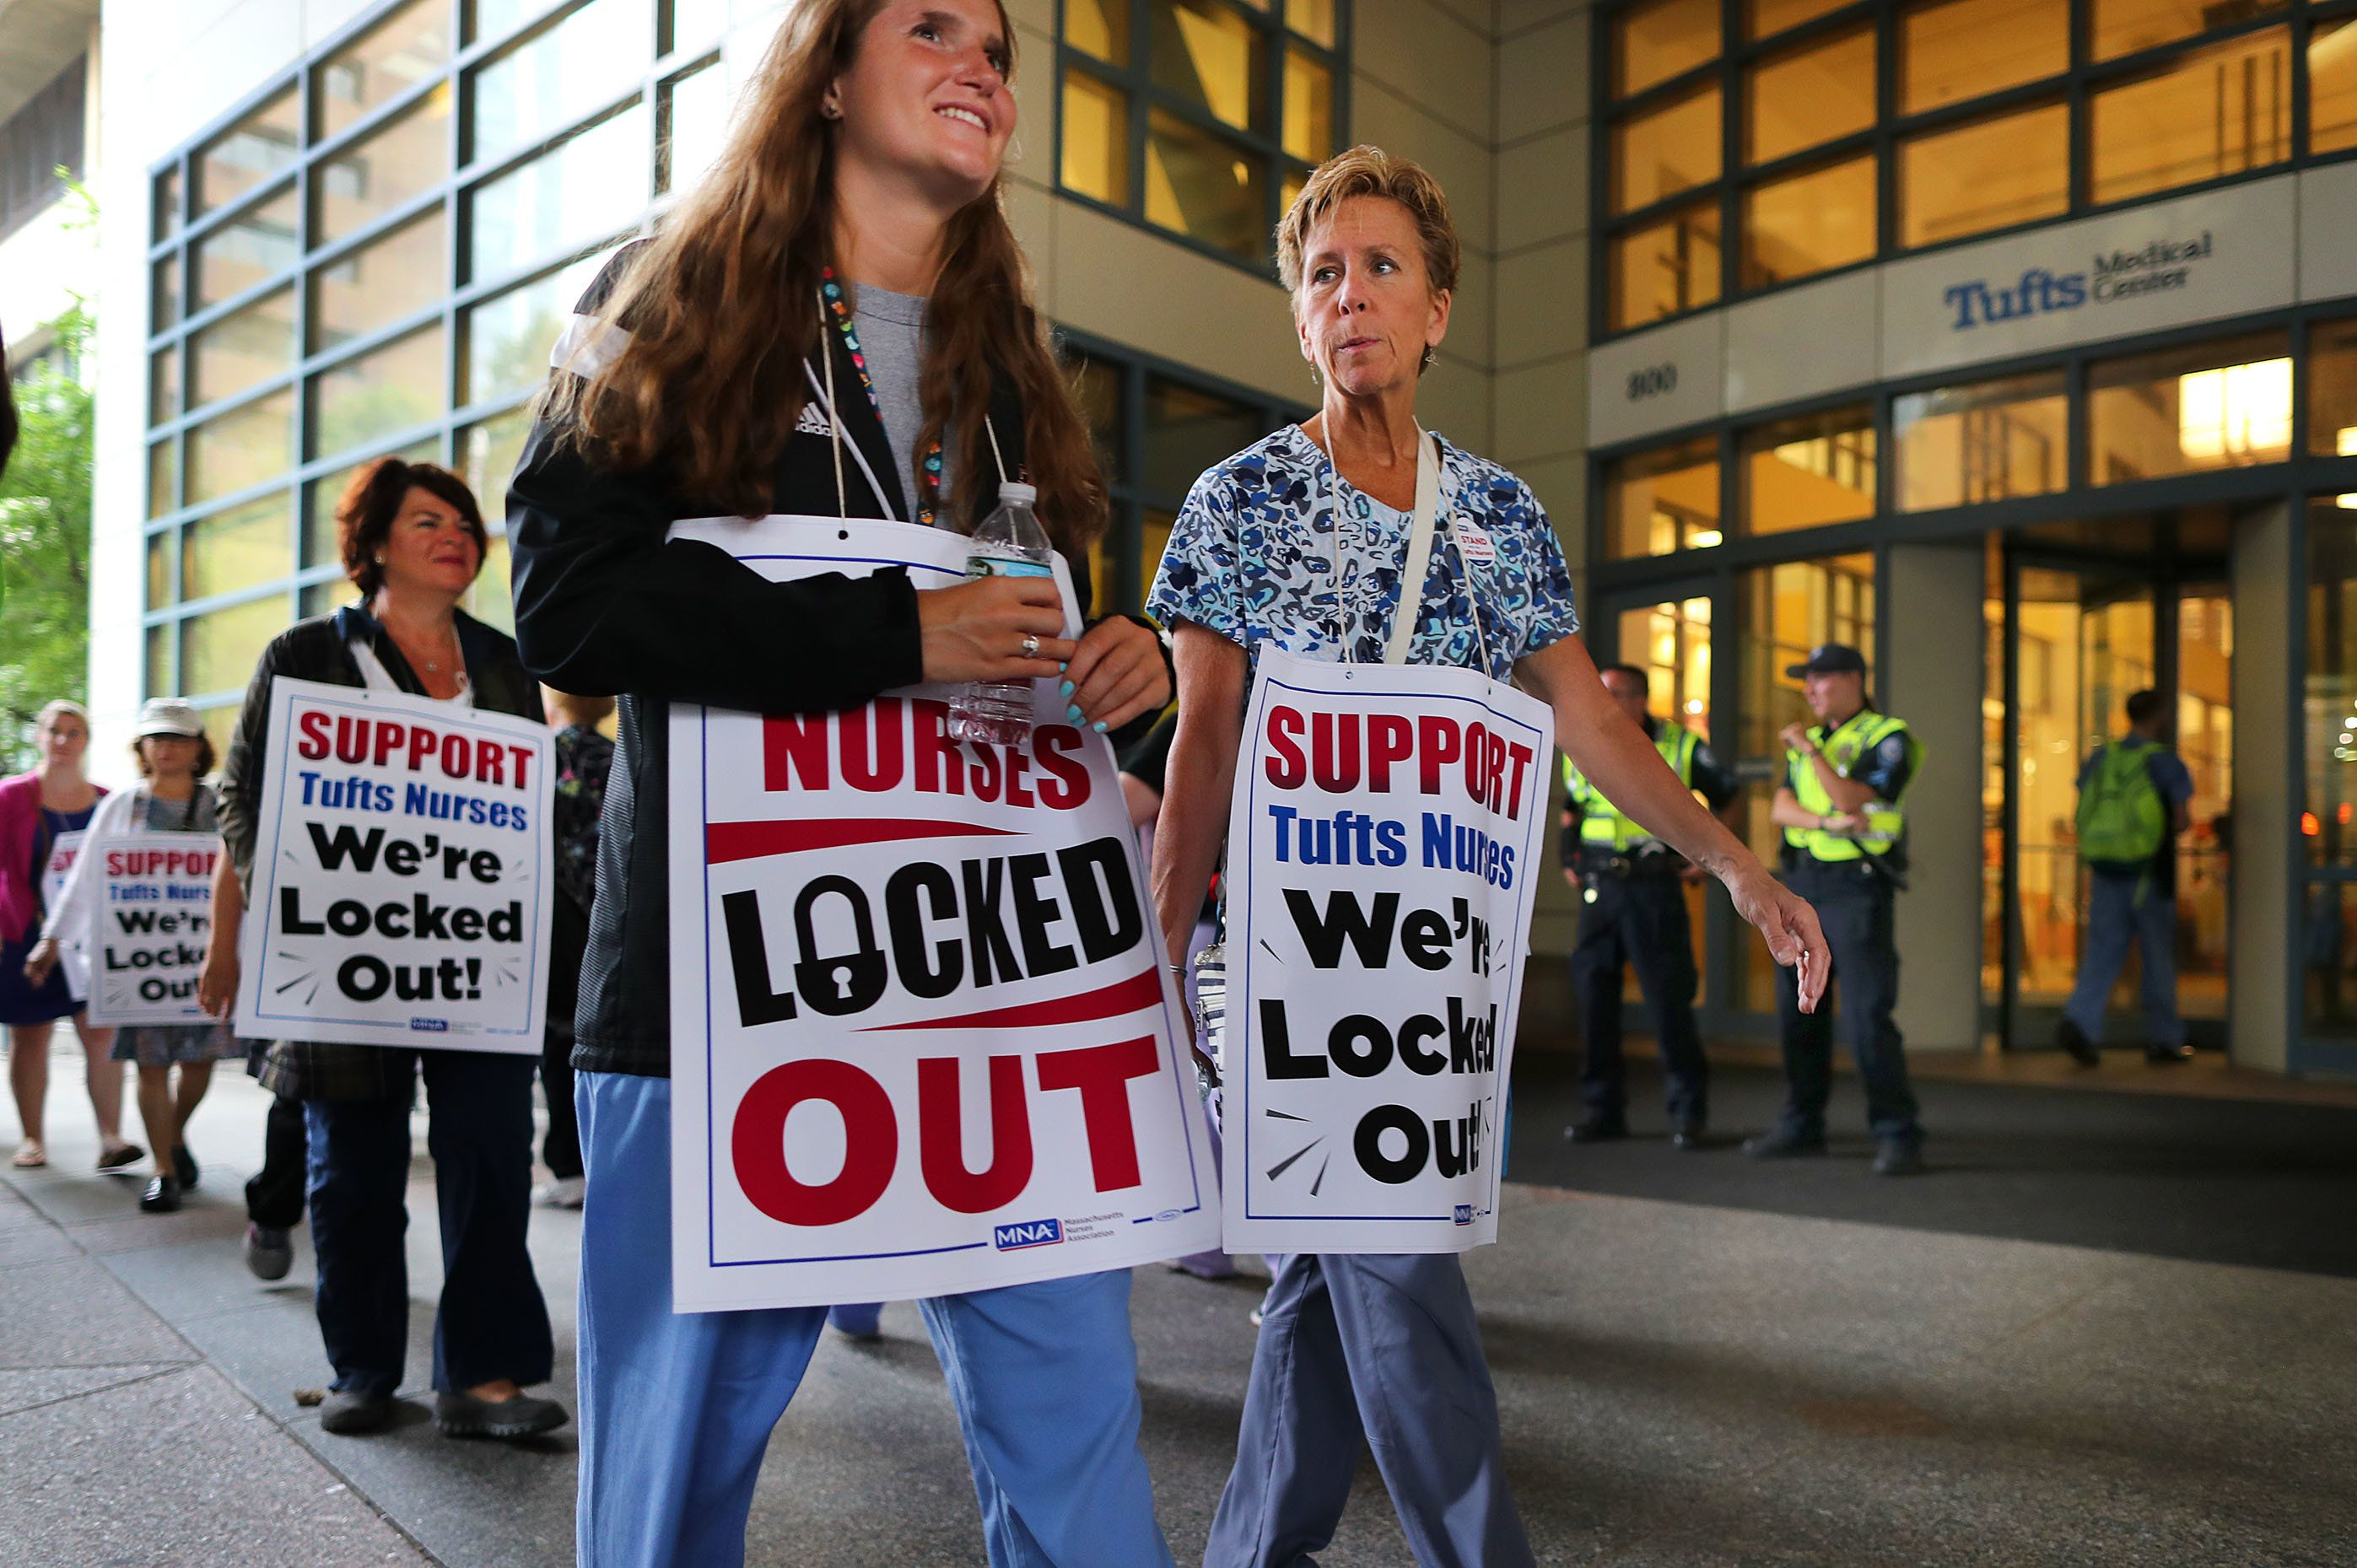 BOSTON, MA - JULY 13: Tufts Medical Center nurses continue to picket after being locked out of their jobs at the hospital in Boston following a 24-hour strike on Jul. 13, 2017. More than 100 members of the striking Massachusetts Nurses Association made a symbolic effort to return to work at the Tufts Medical Center, but they were rebuffed by security as the first nurses strike against a Boston hospital since 1986 turned into a lockout expected to last into Monday. (Photo by John Tlumacki/The Boston Globe via Getty Images)